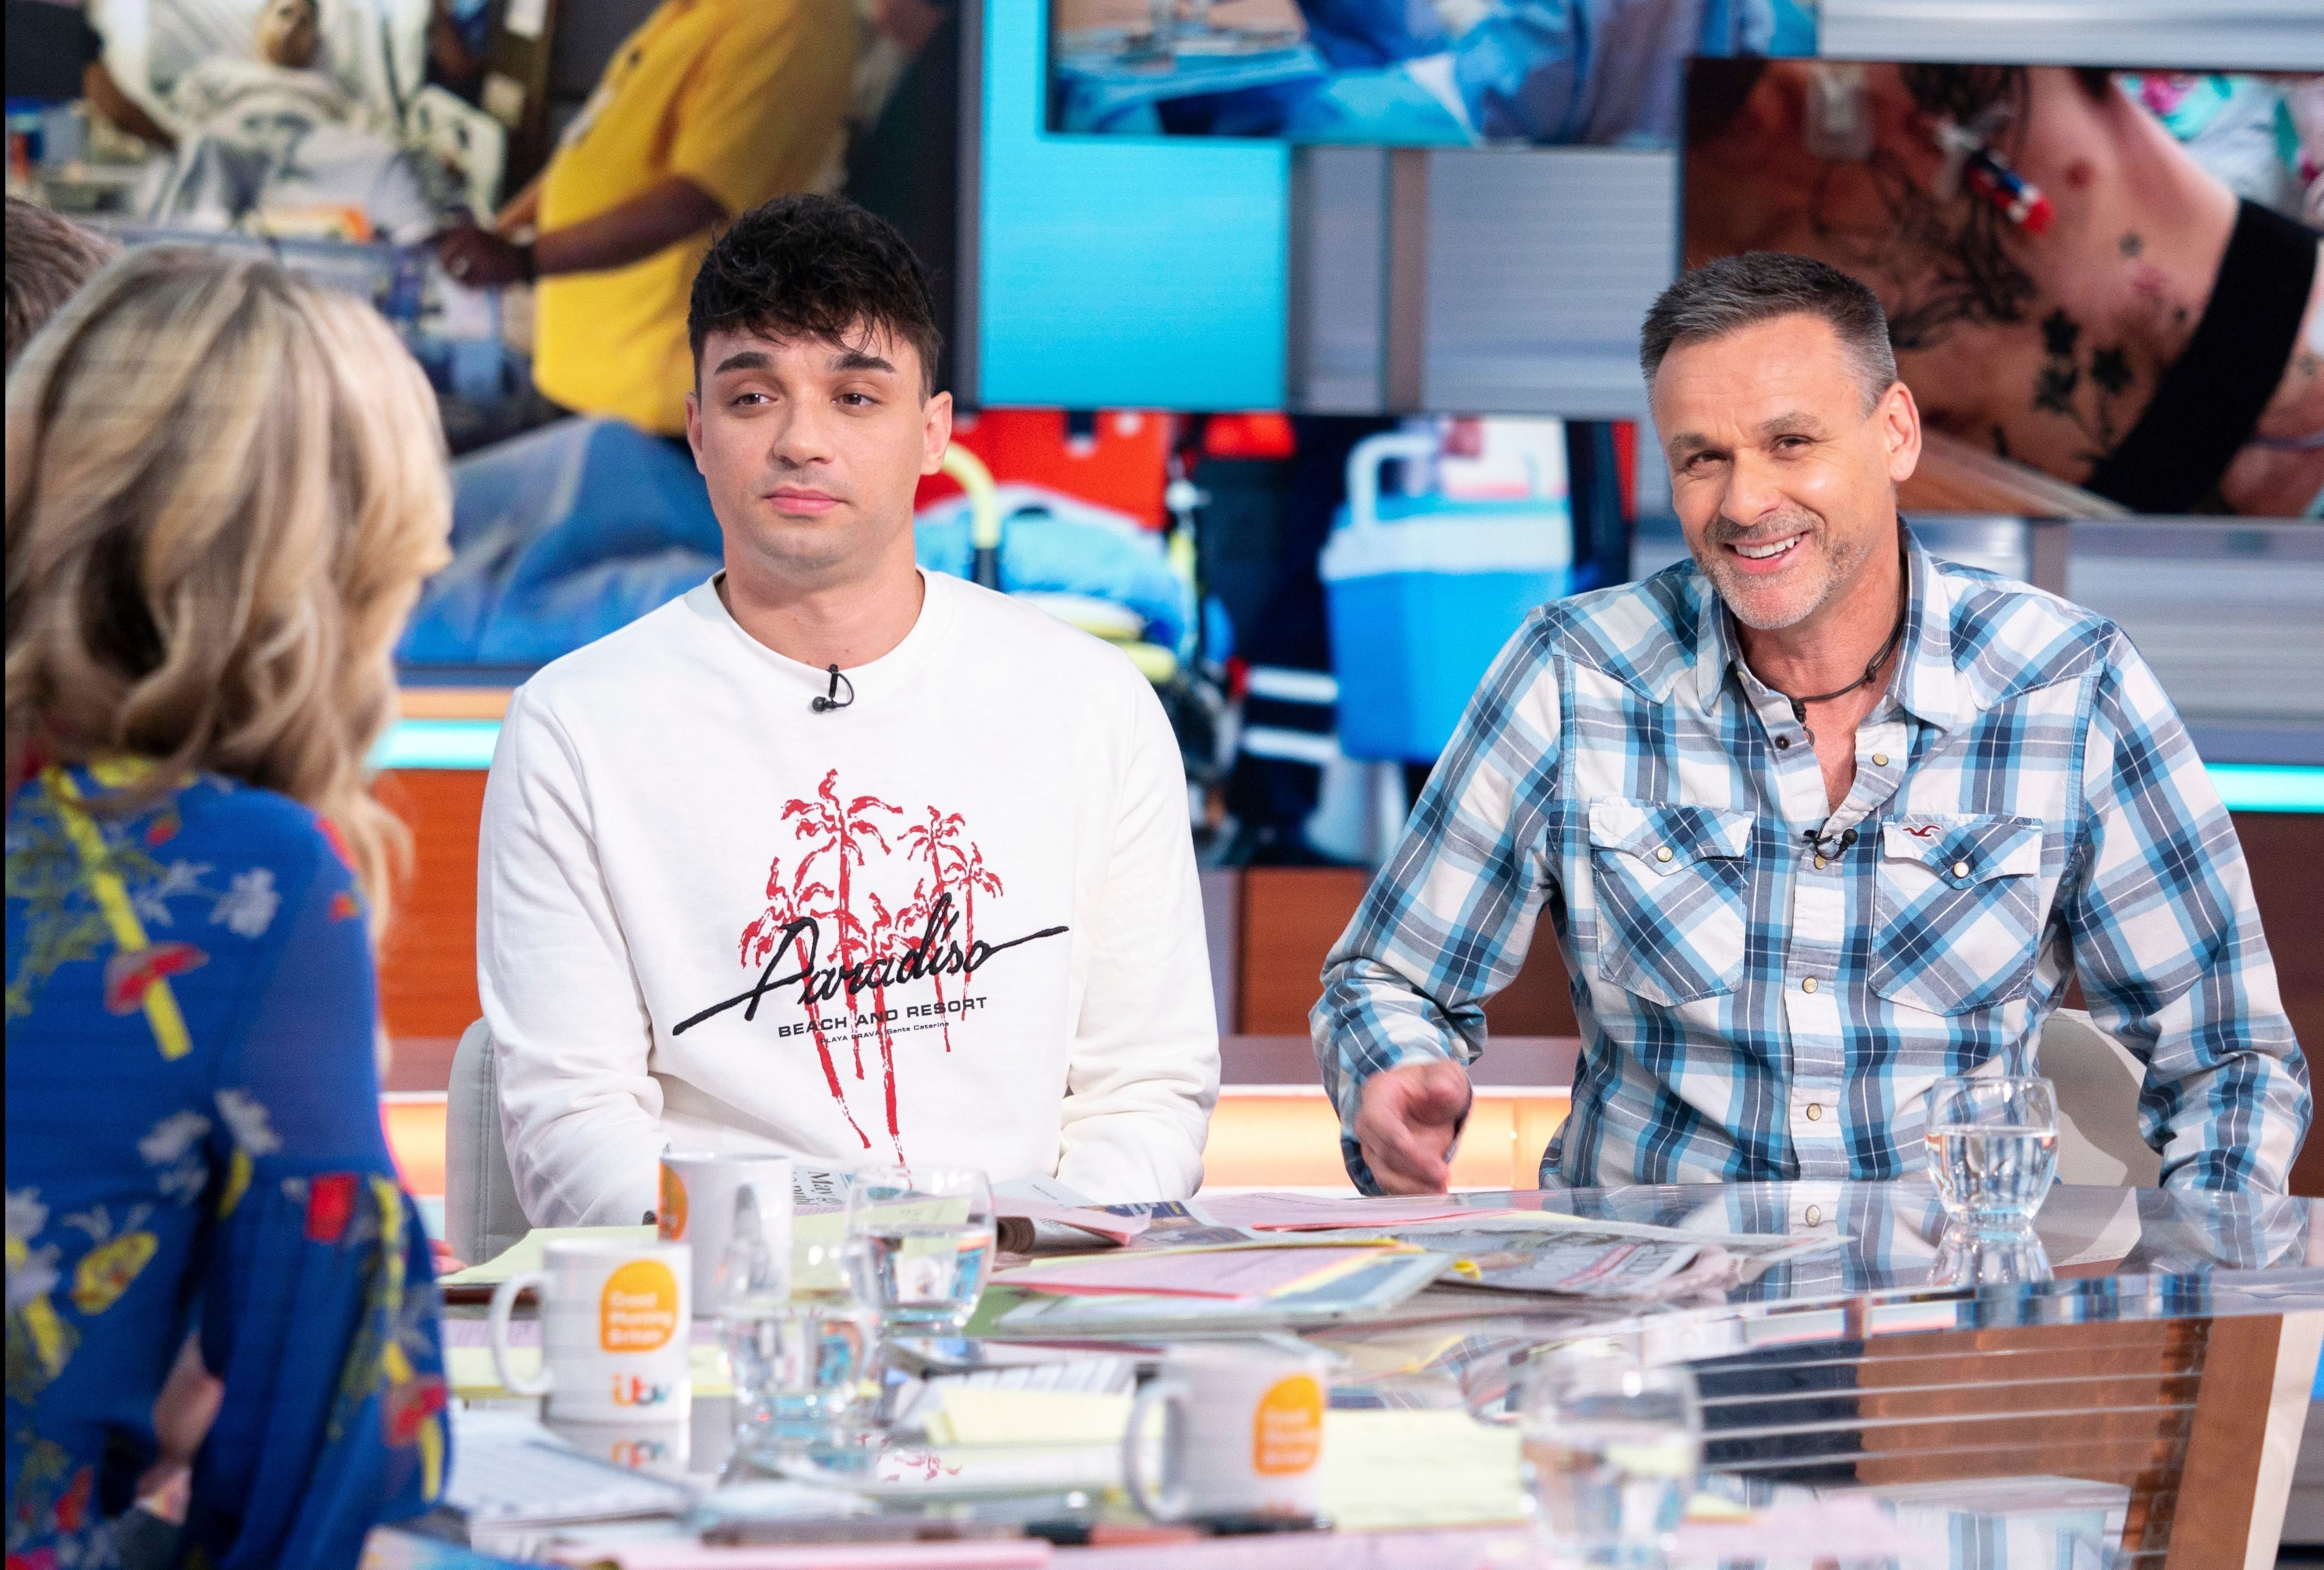 Lewis told Good Morning Britain he started suffering kidney problems when he was 11 – and was diagnosed with kidney disease at 17